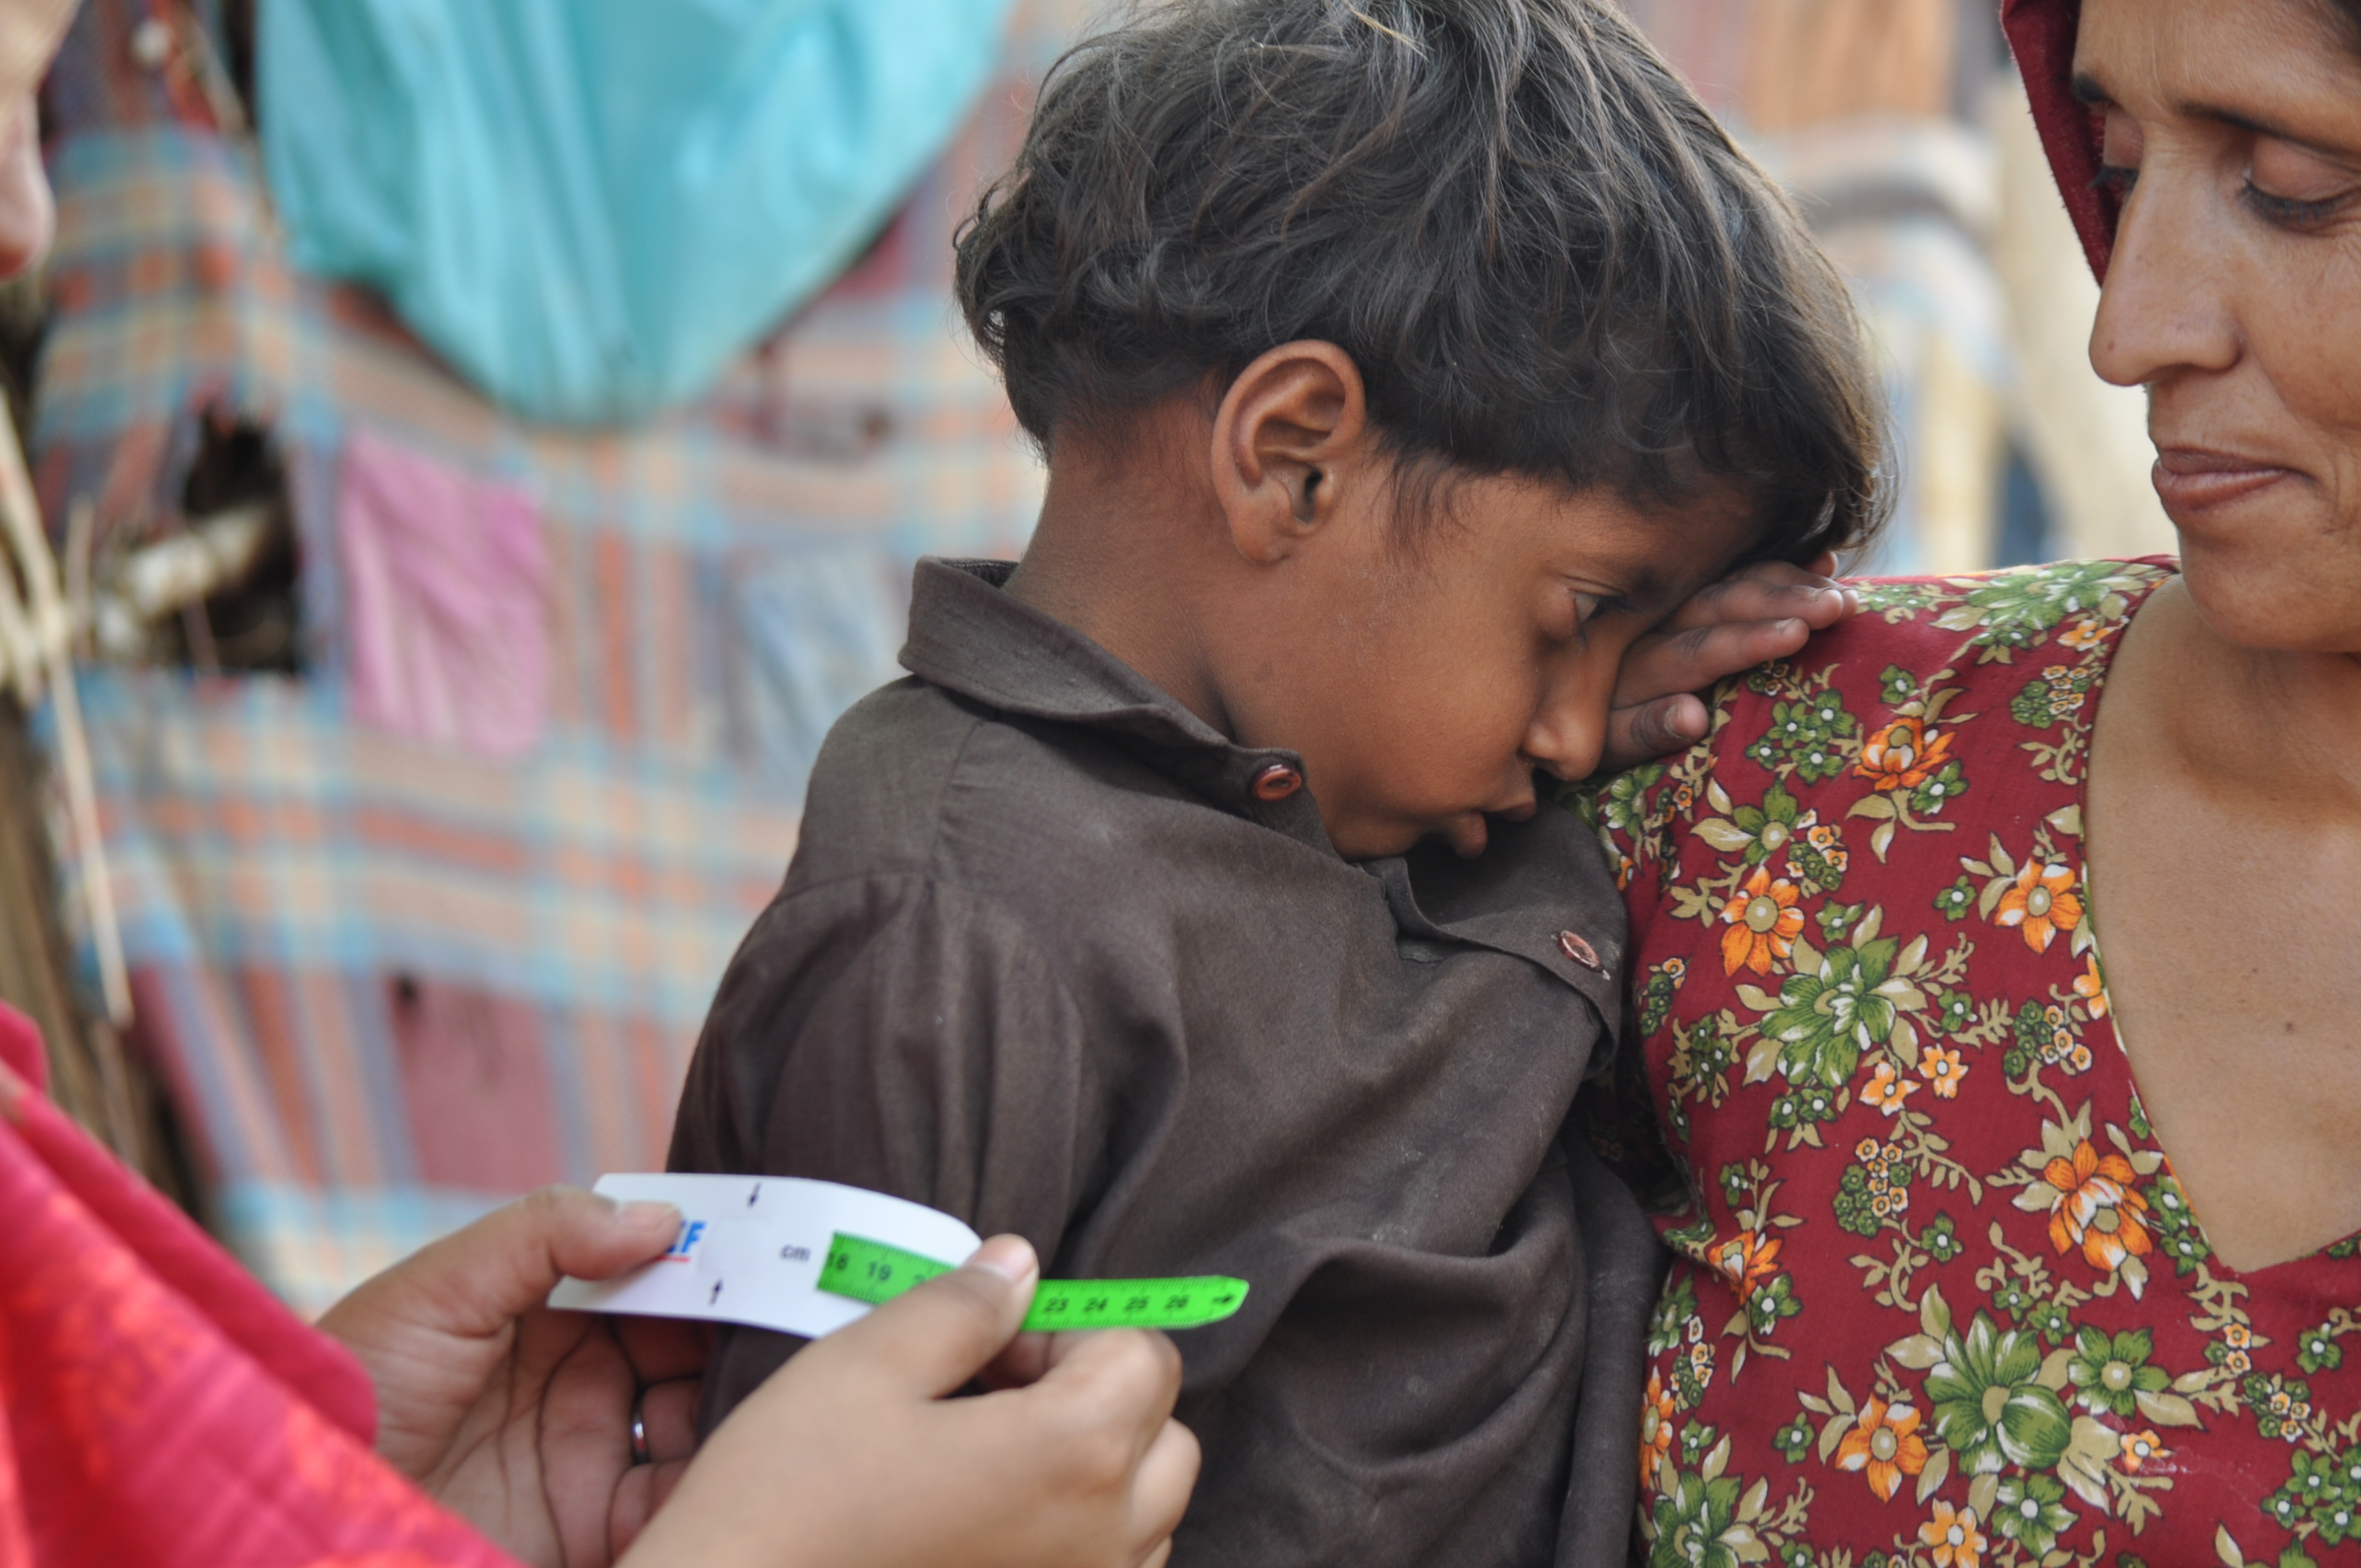 A middle-upper arm circumference (MUAC) test is administered on a child in Dadu. Photo: Z. Metlo